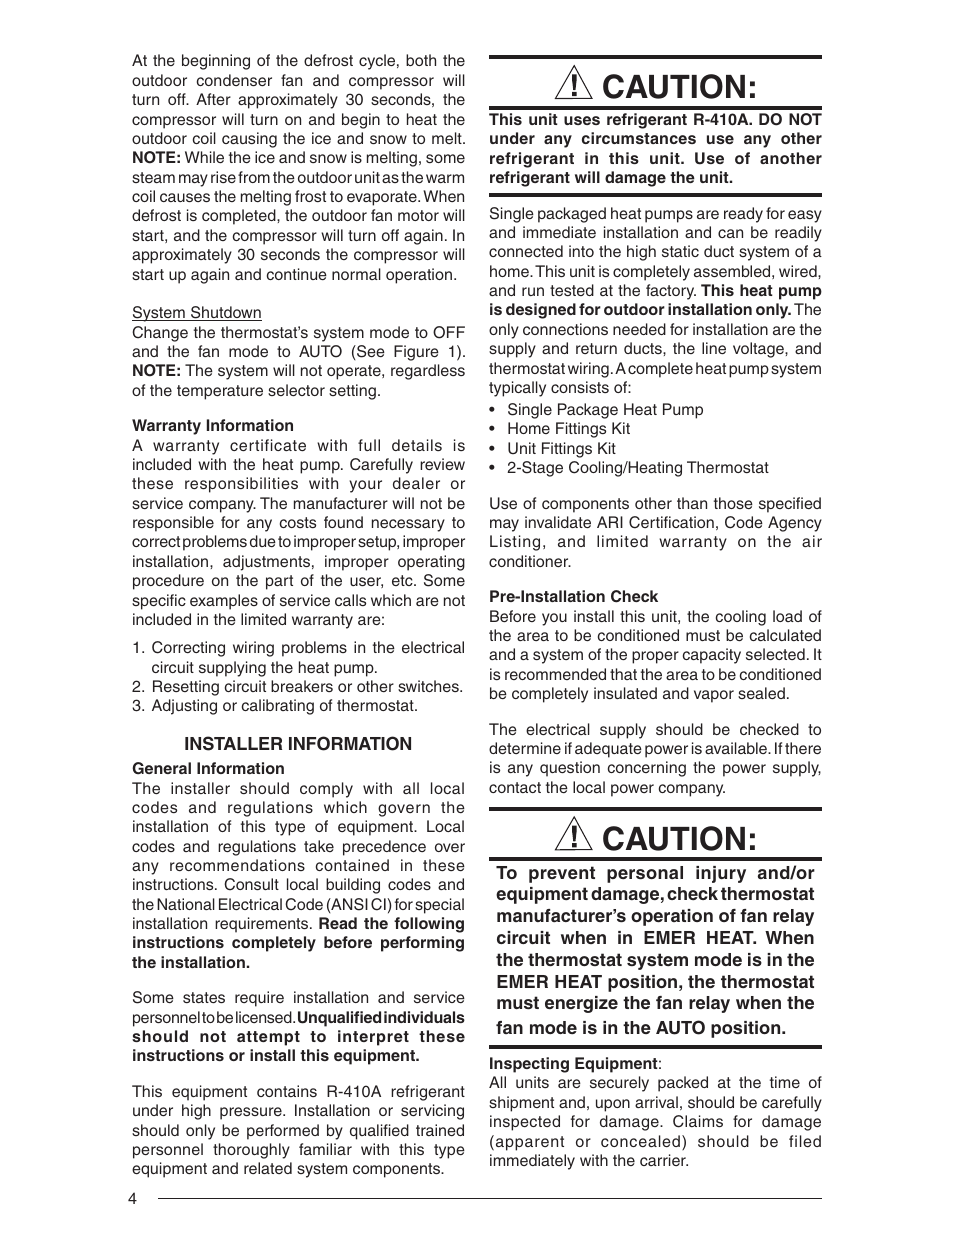 Caution | Nordyne Single Package Heat Pump R-410A User Manual | Page